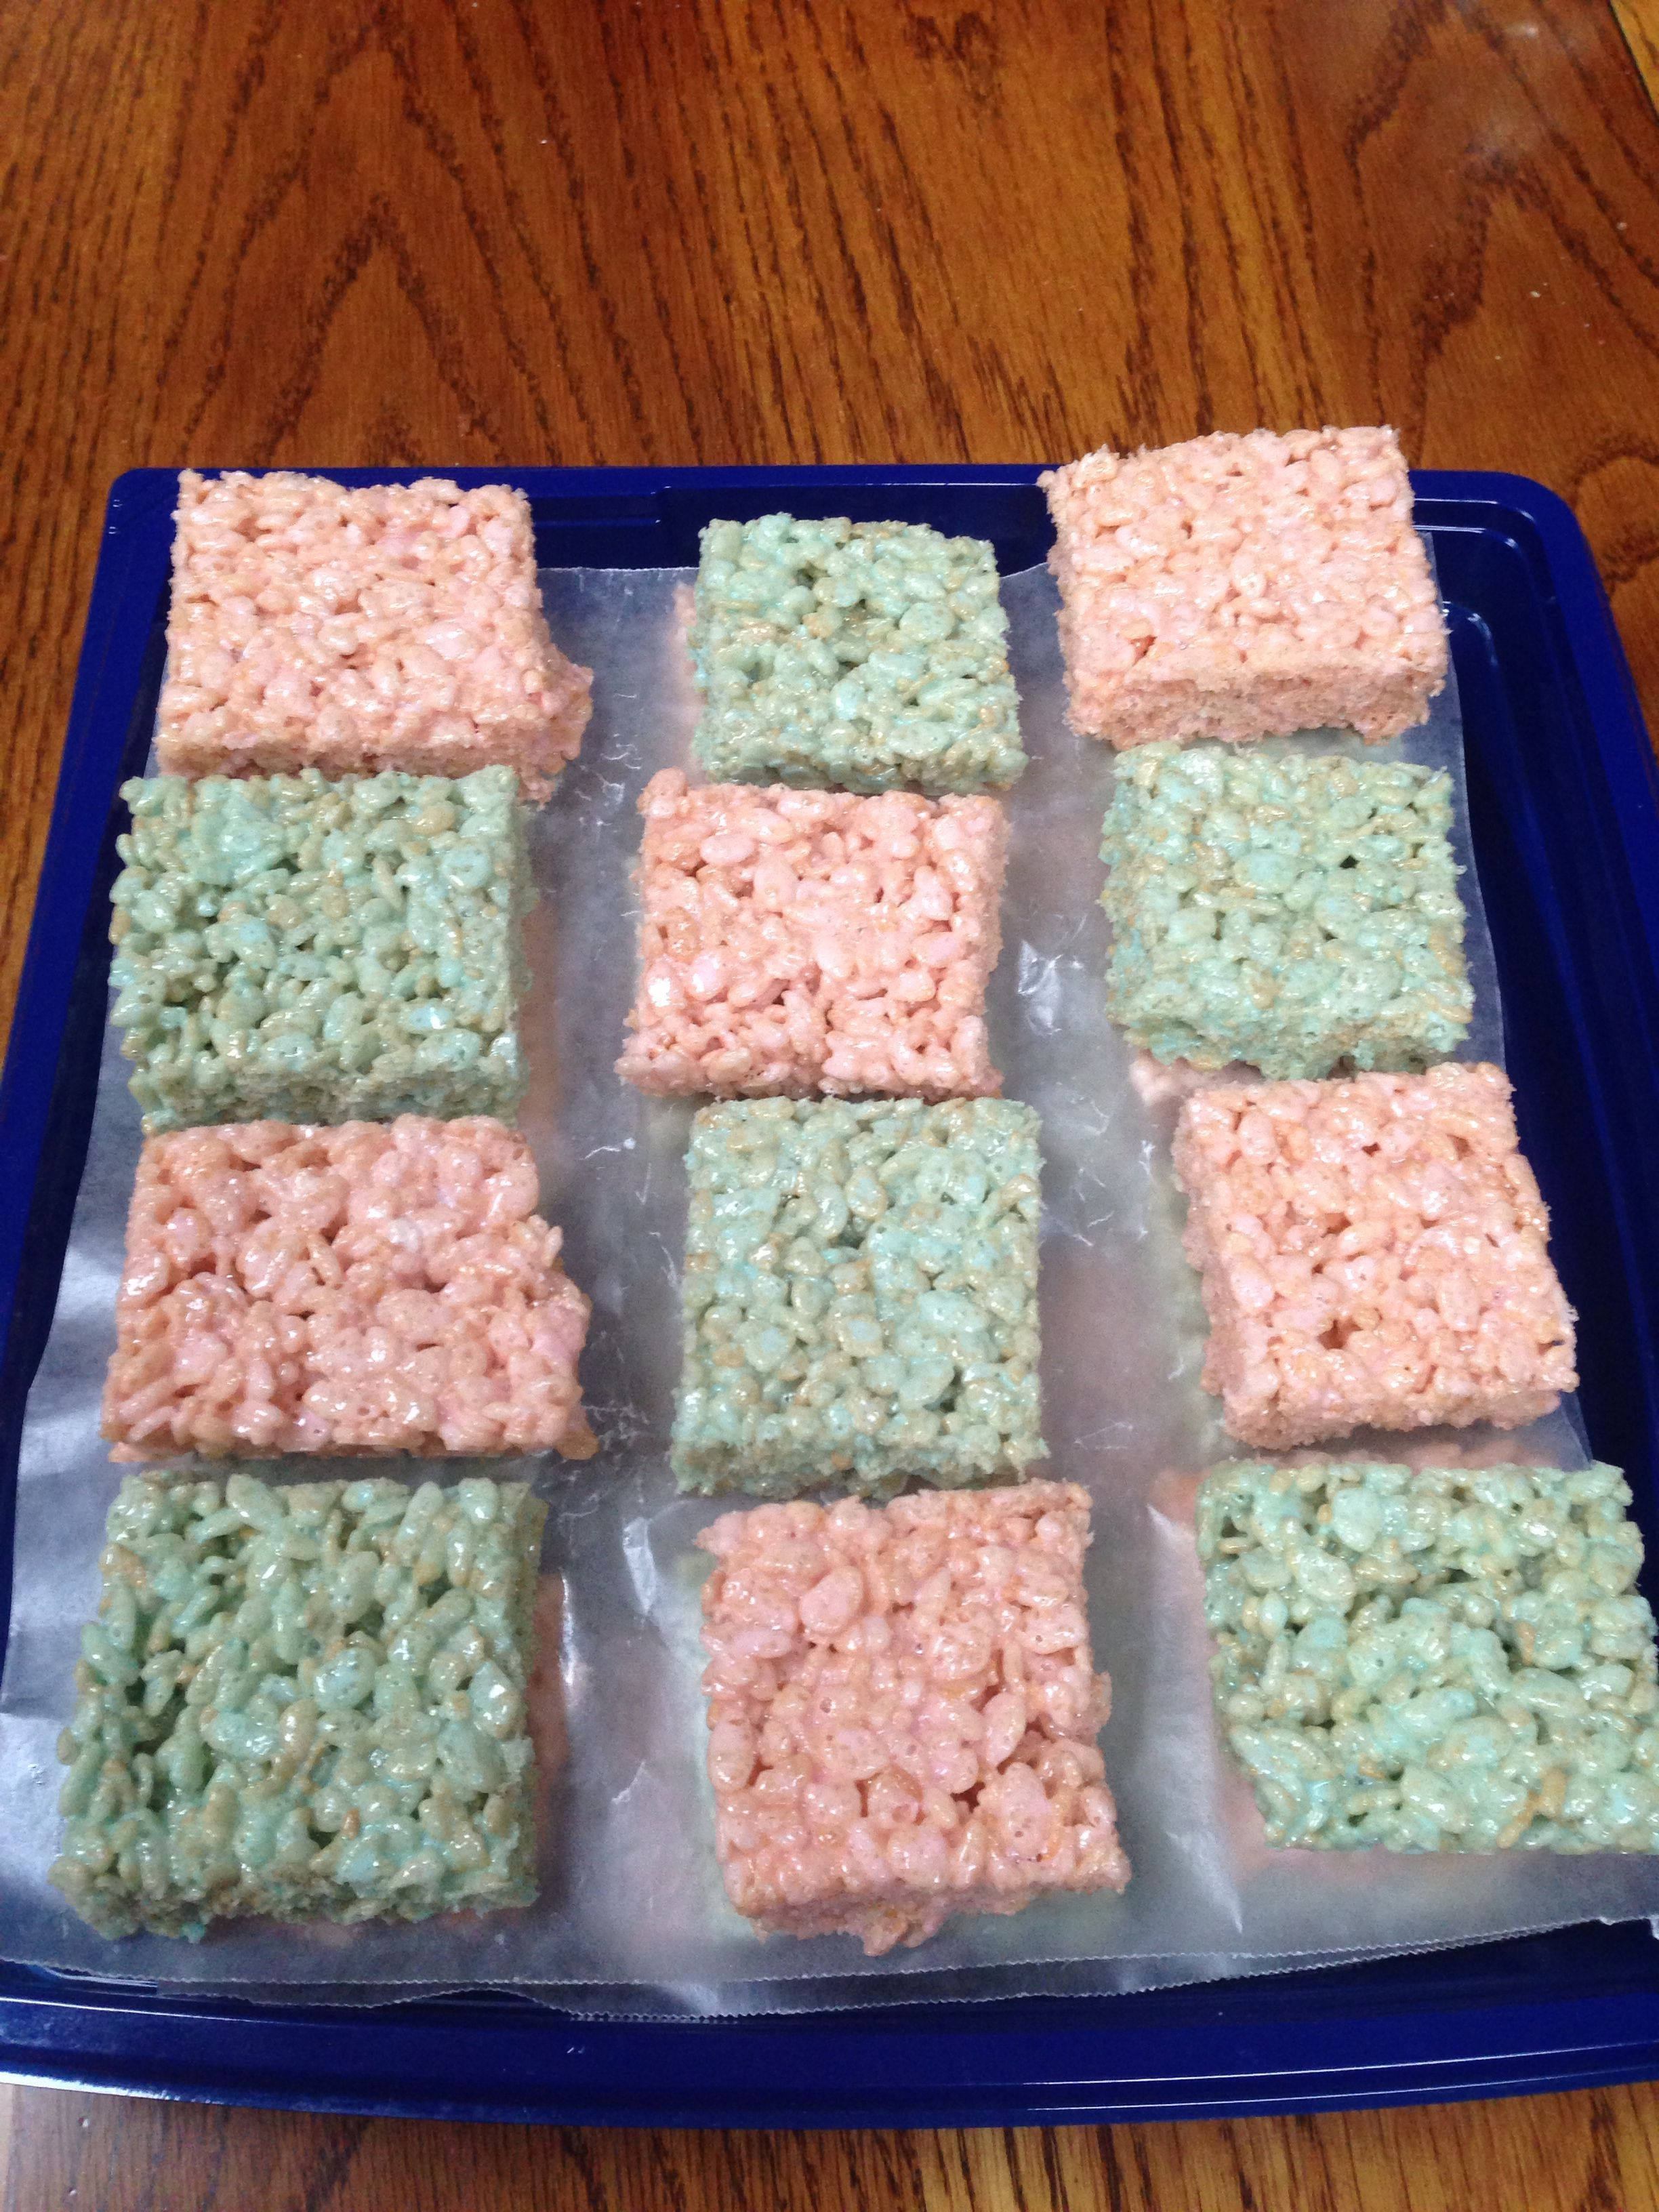 10 Gender Reveal Party Food Ideas that are Mouth-Watering ...